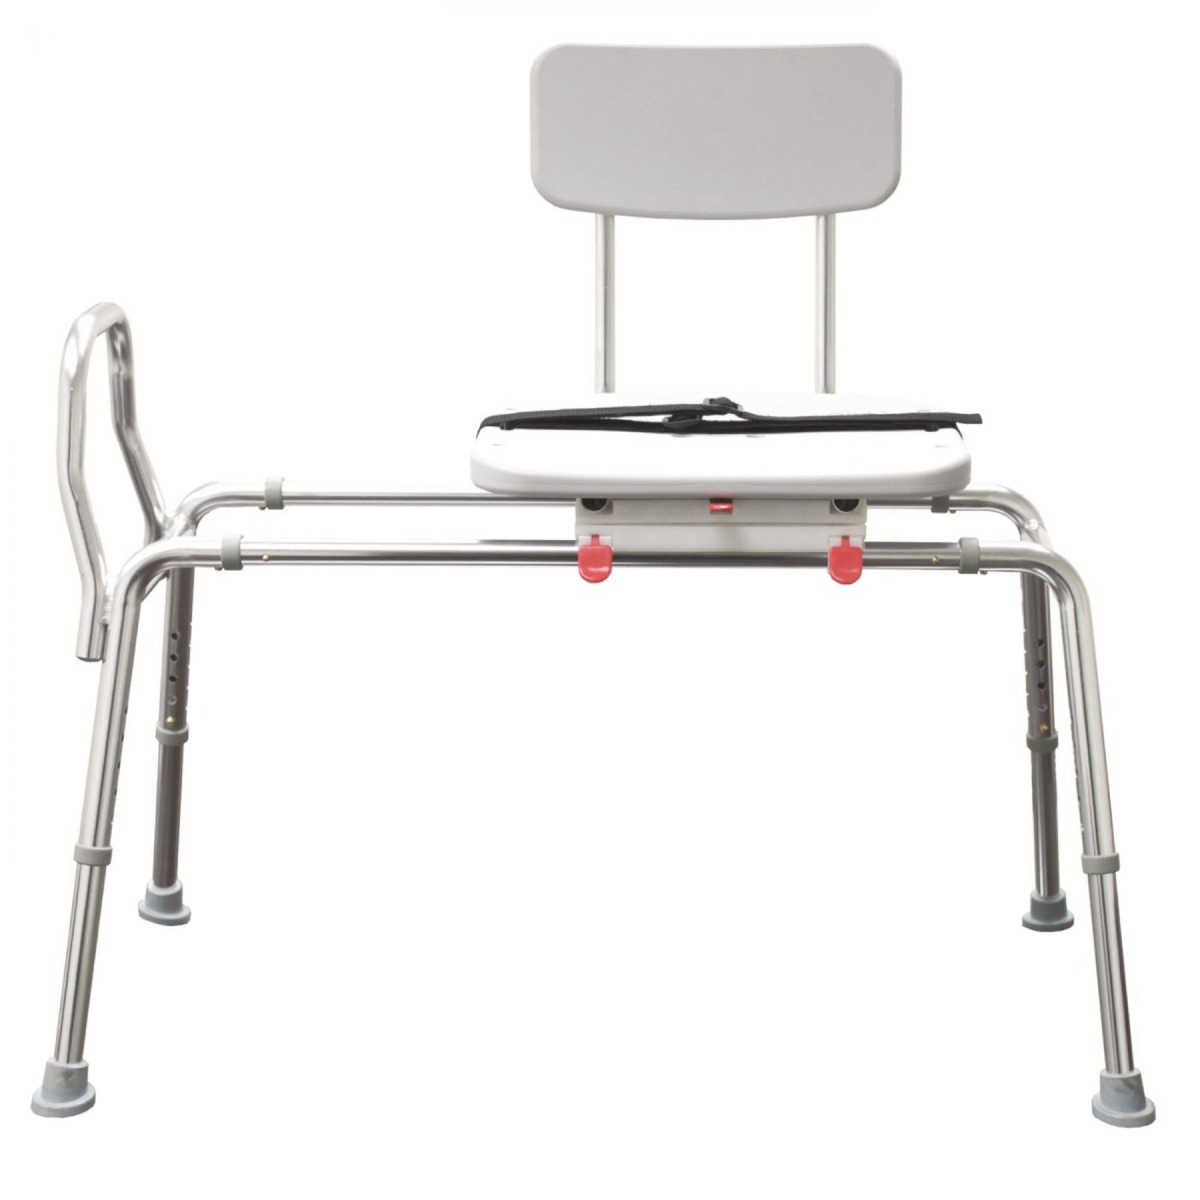 The Best Shower Chairs Bath Benches For Seniors Performance Health